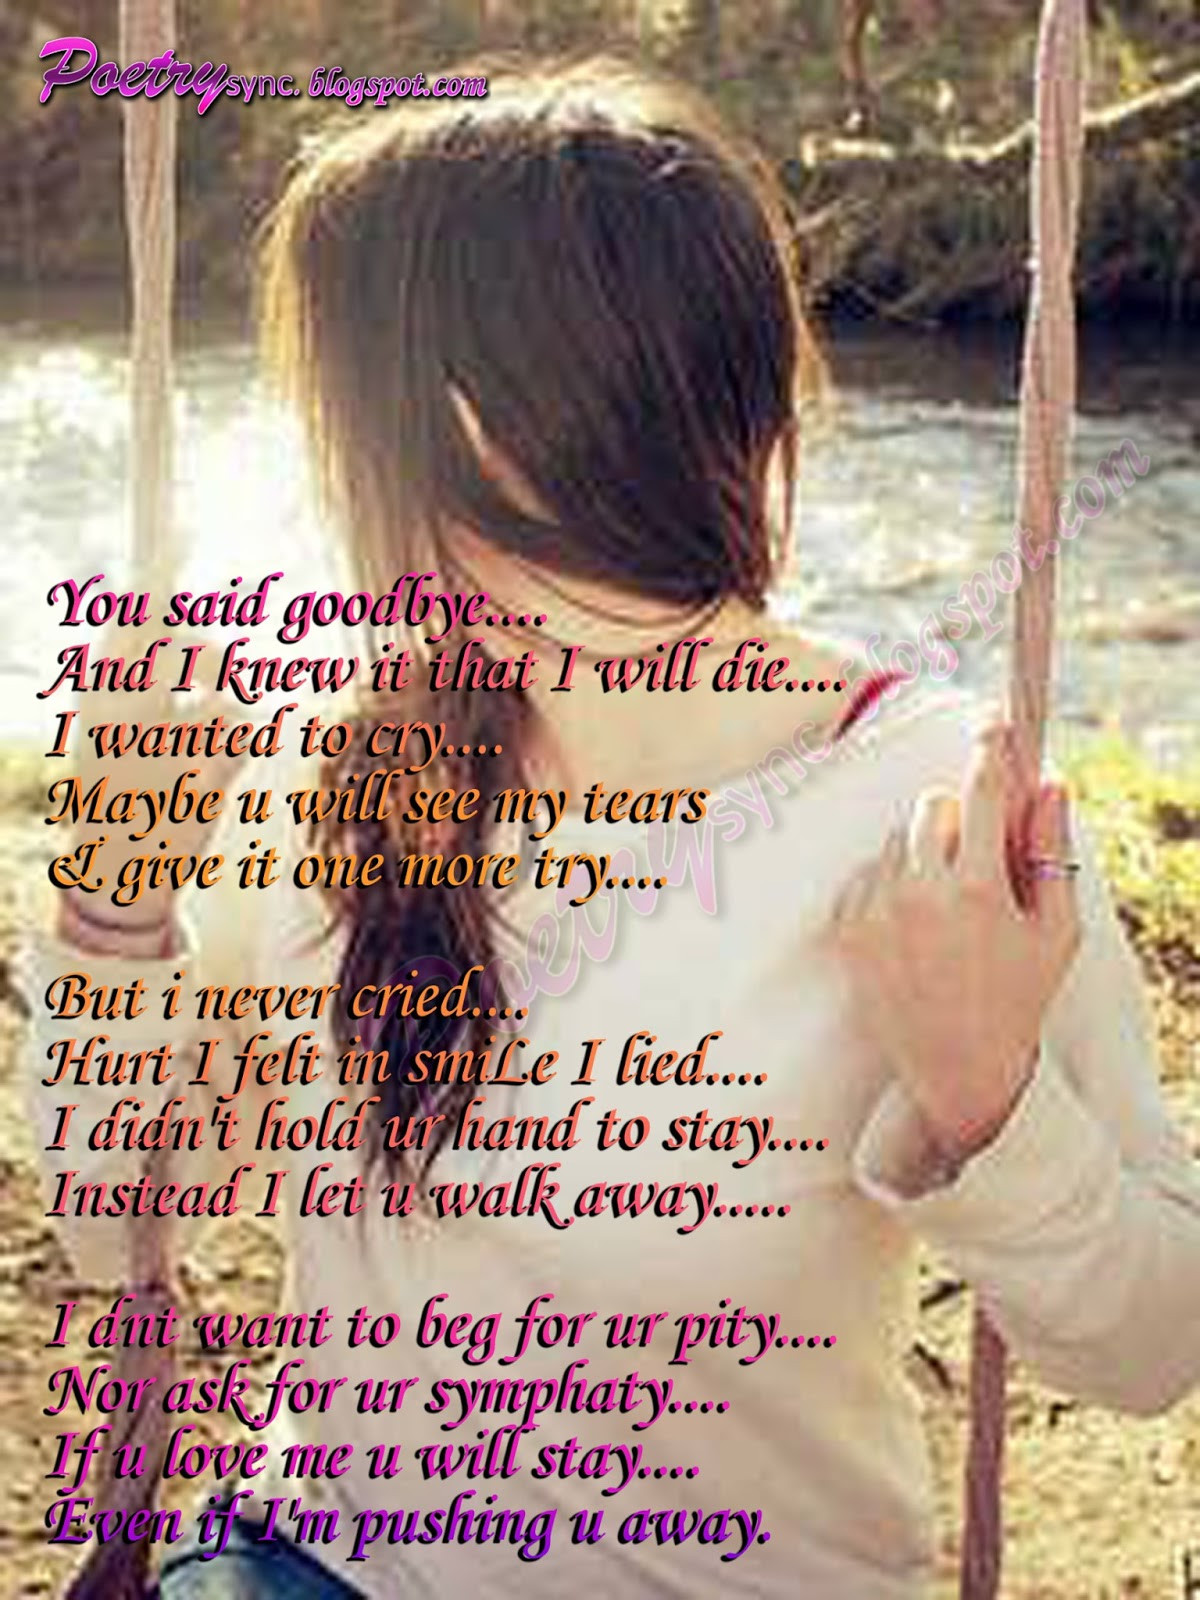 Romantic Quotes For Her To Make Her Cry  Romantic Quotes For Her That Will Make Her Cry QuotesGram